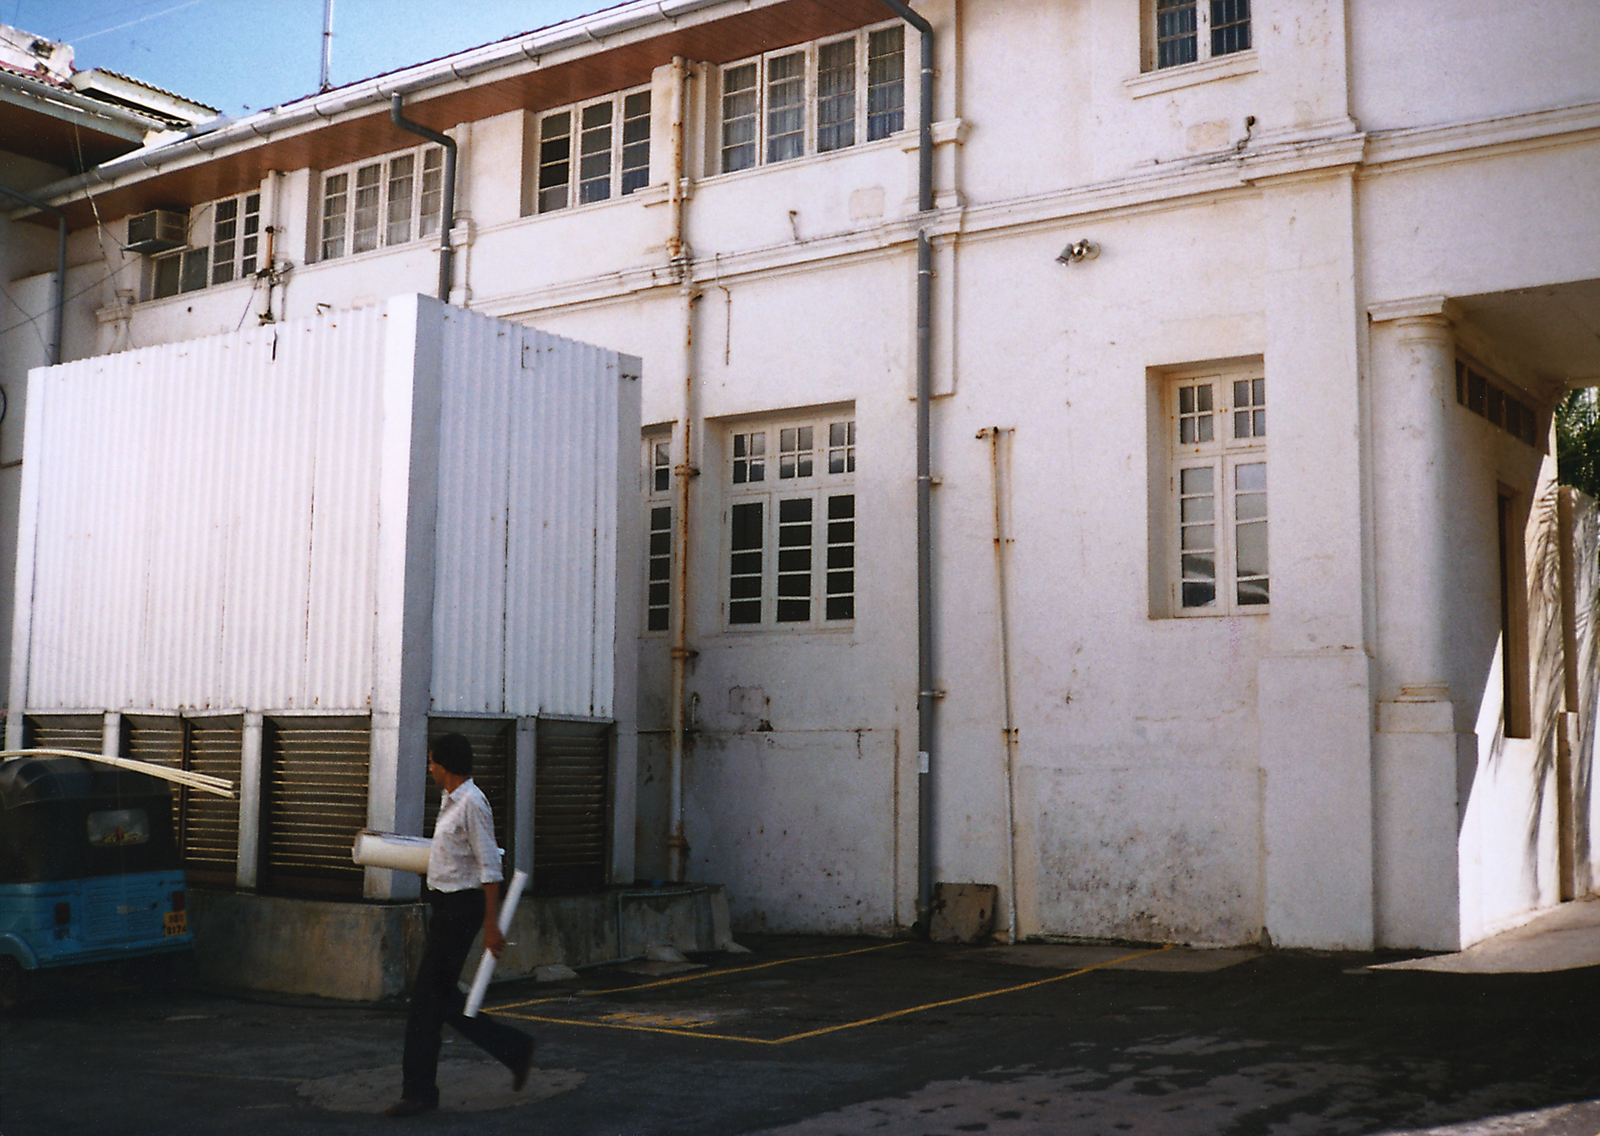 Colombo - Annex Office Building - 1990